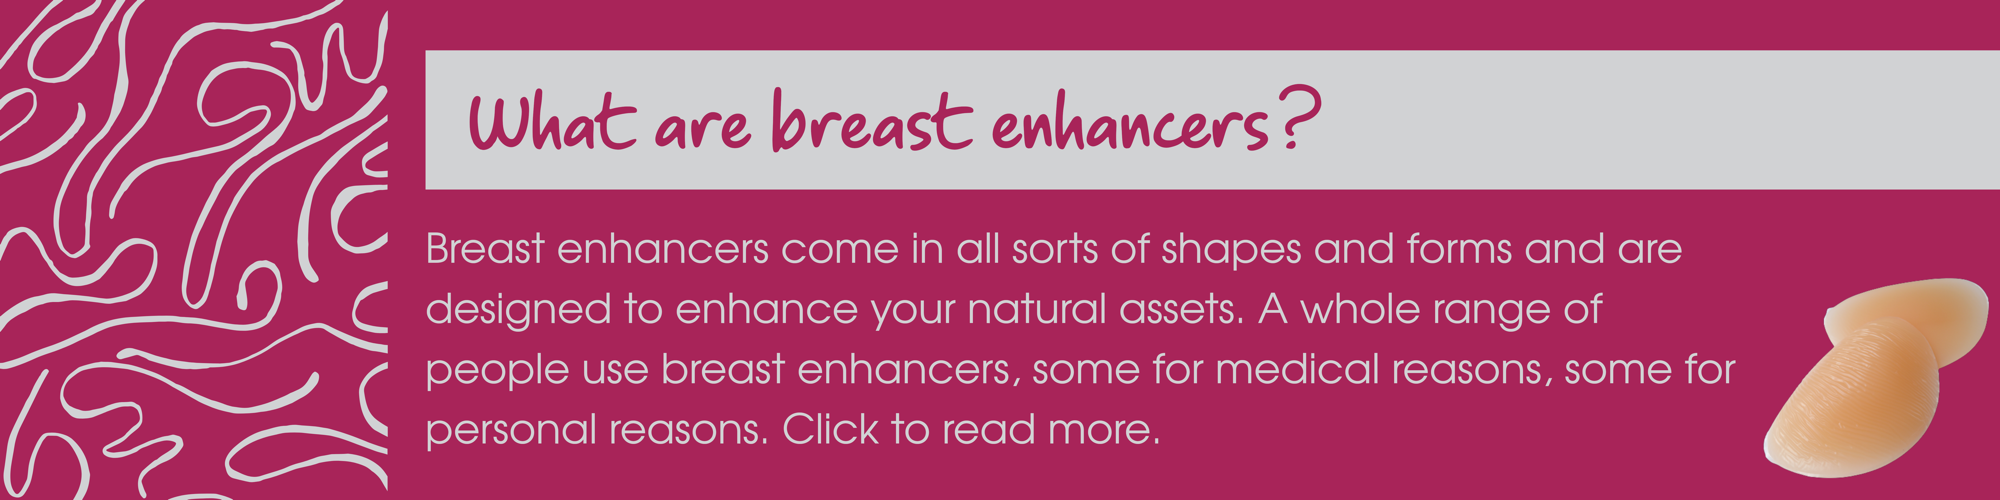 What are breast enhancers